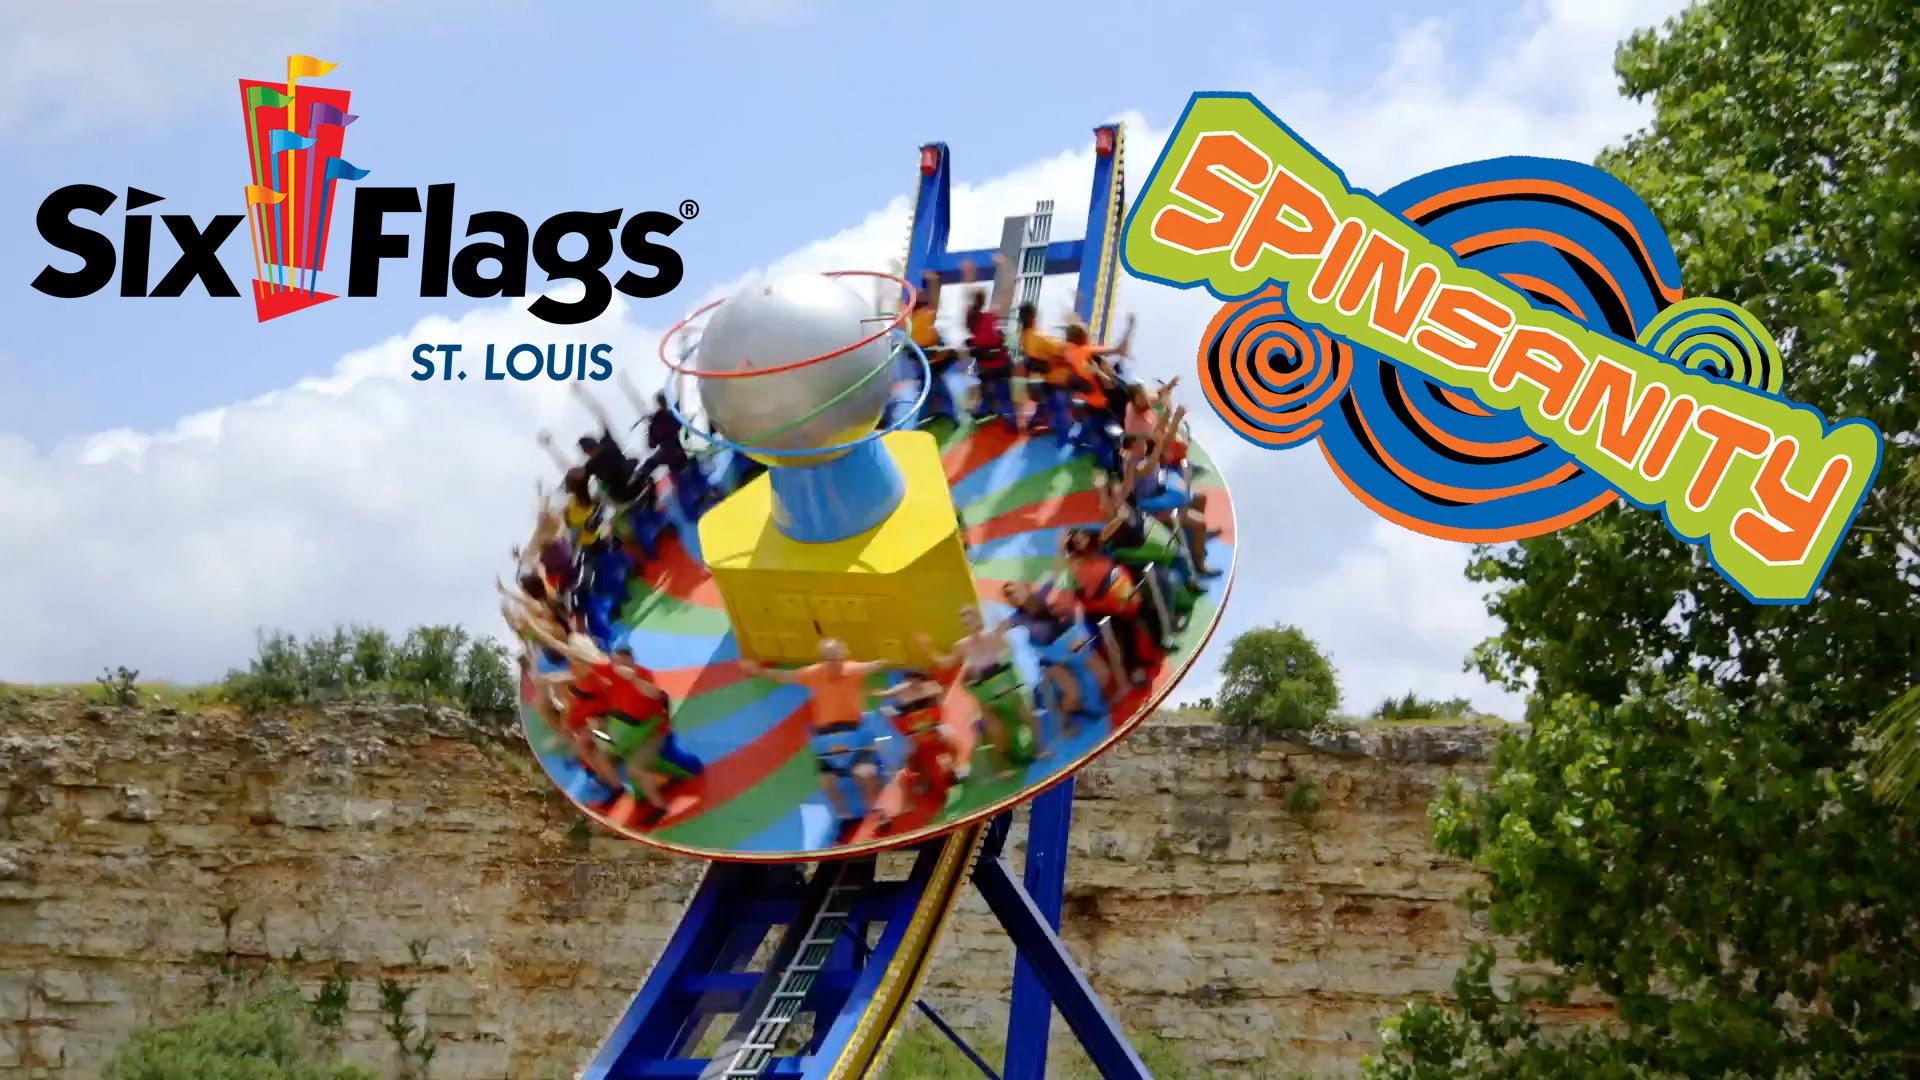 spinsanity flat ride new at six flags st louis in 2017